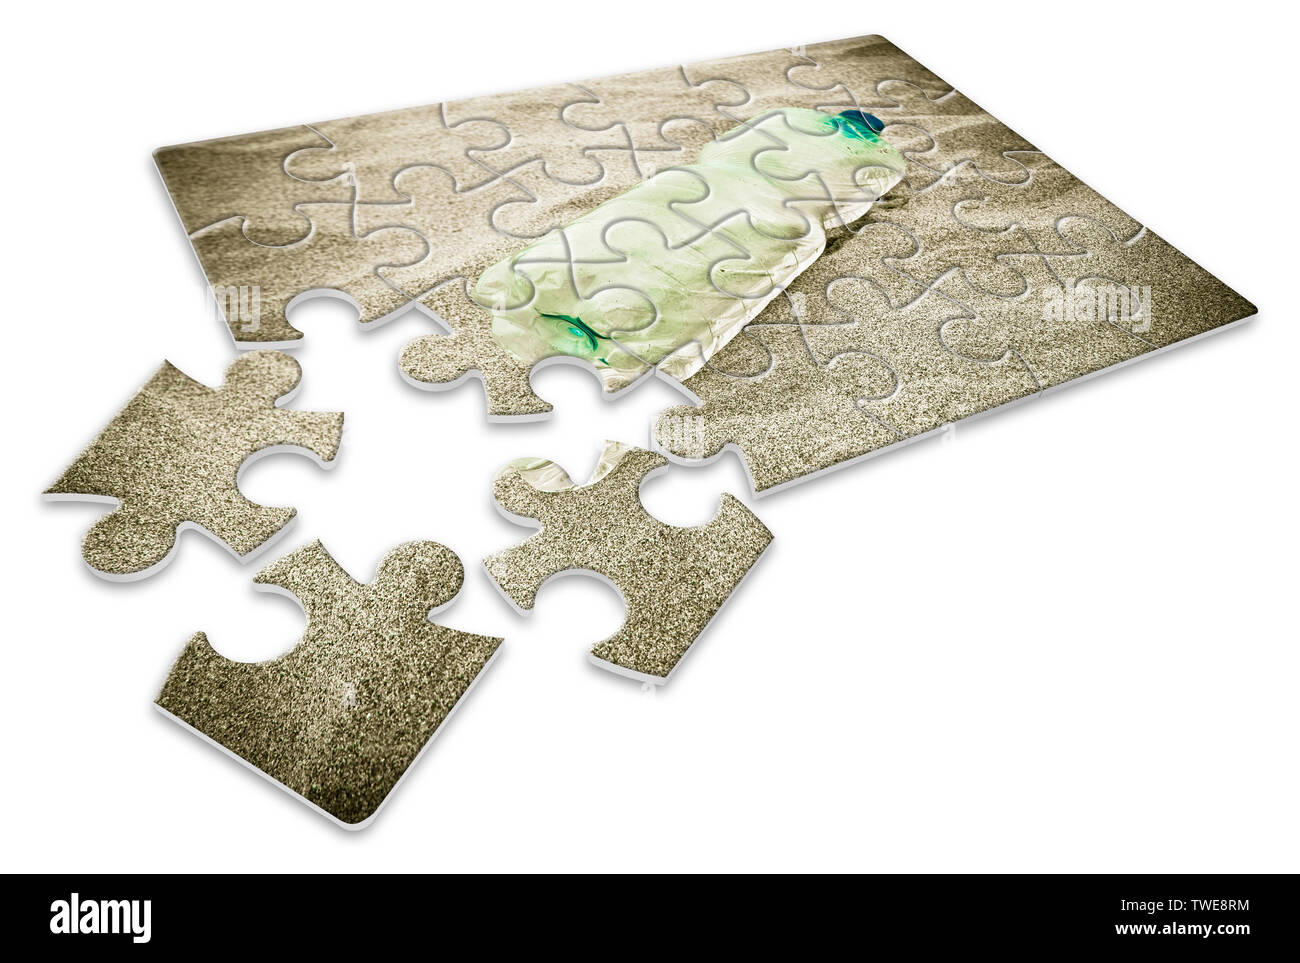 Empty green plastic bottle abandoned on the beach - concept image in jigsaw puzzle shape - Stock Image